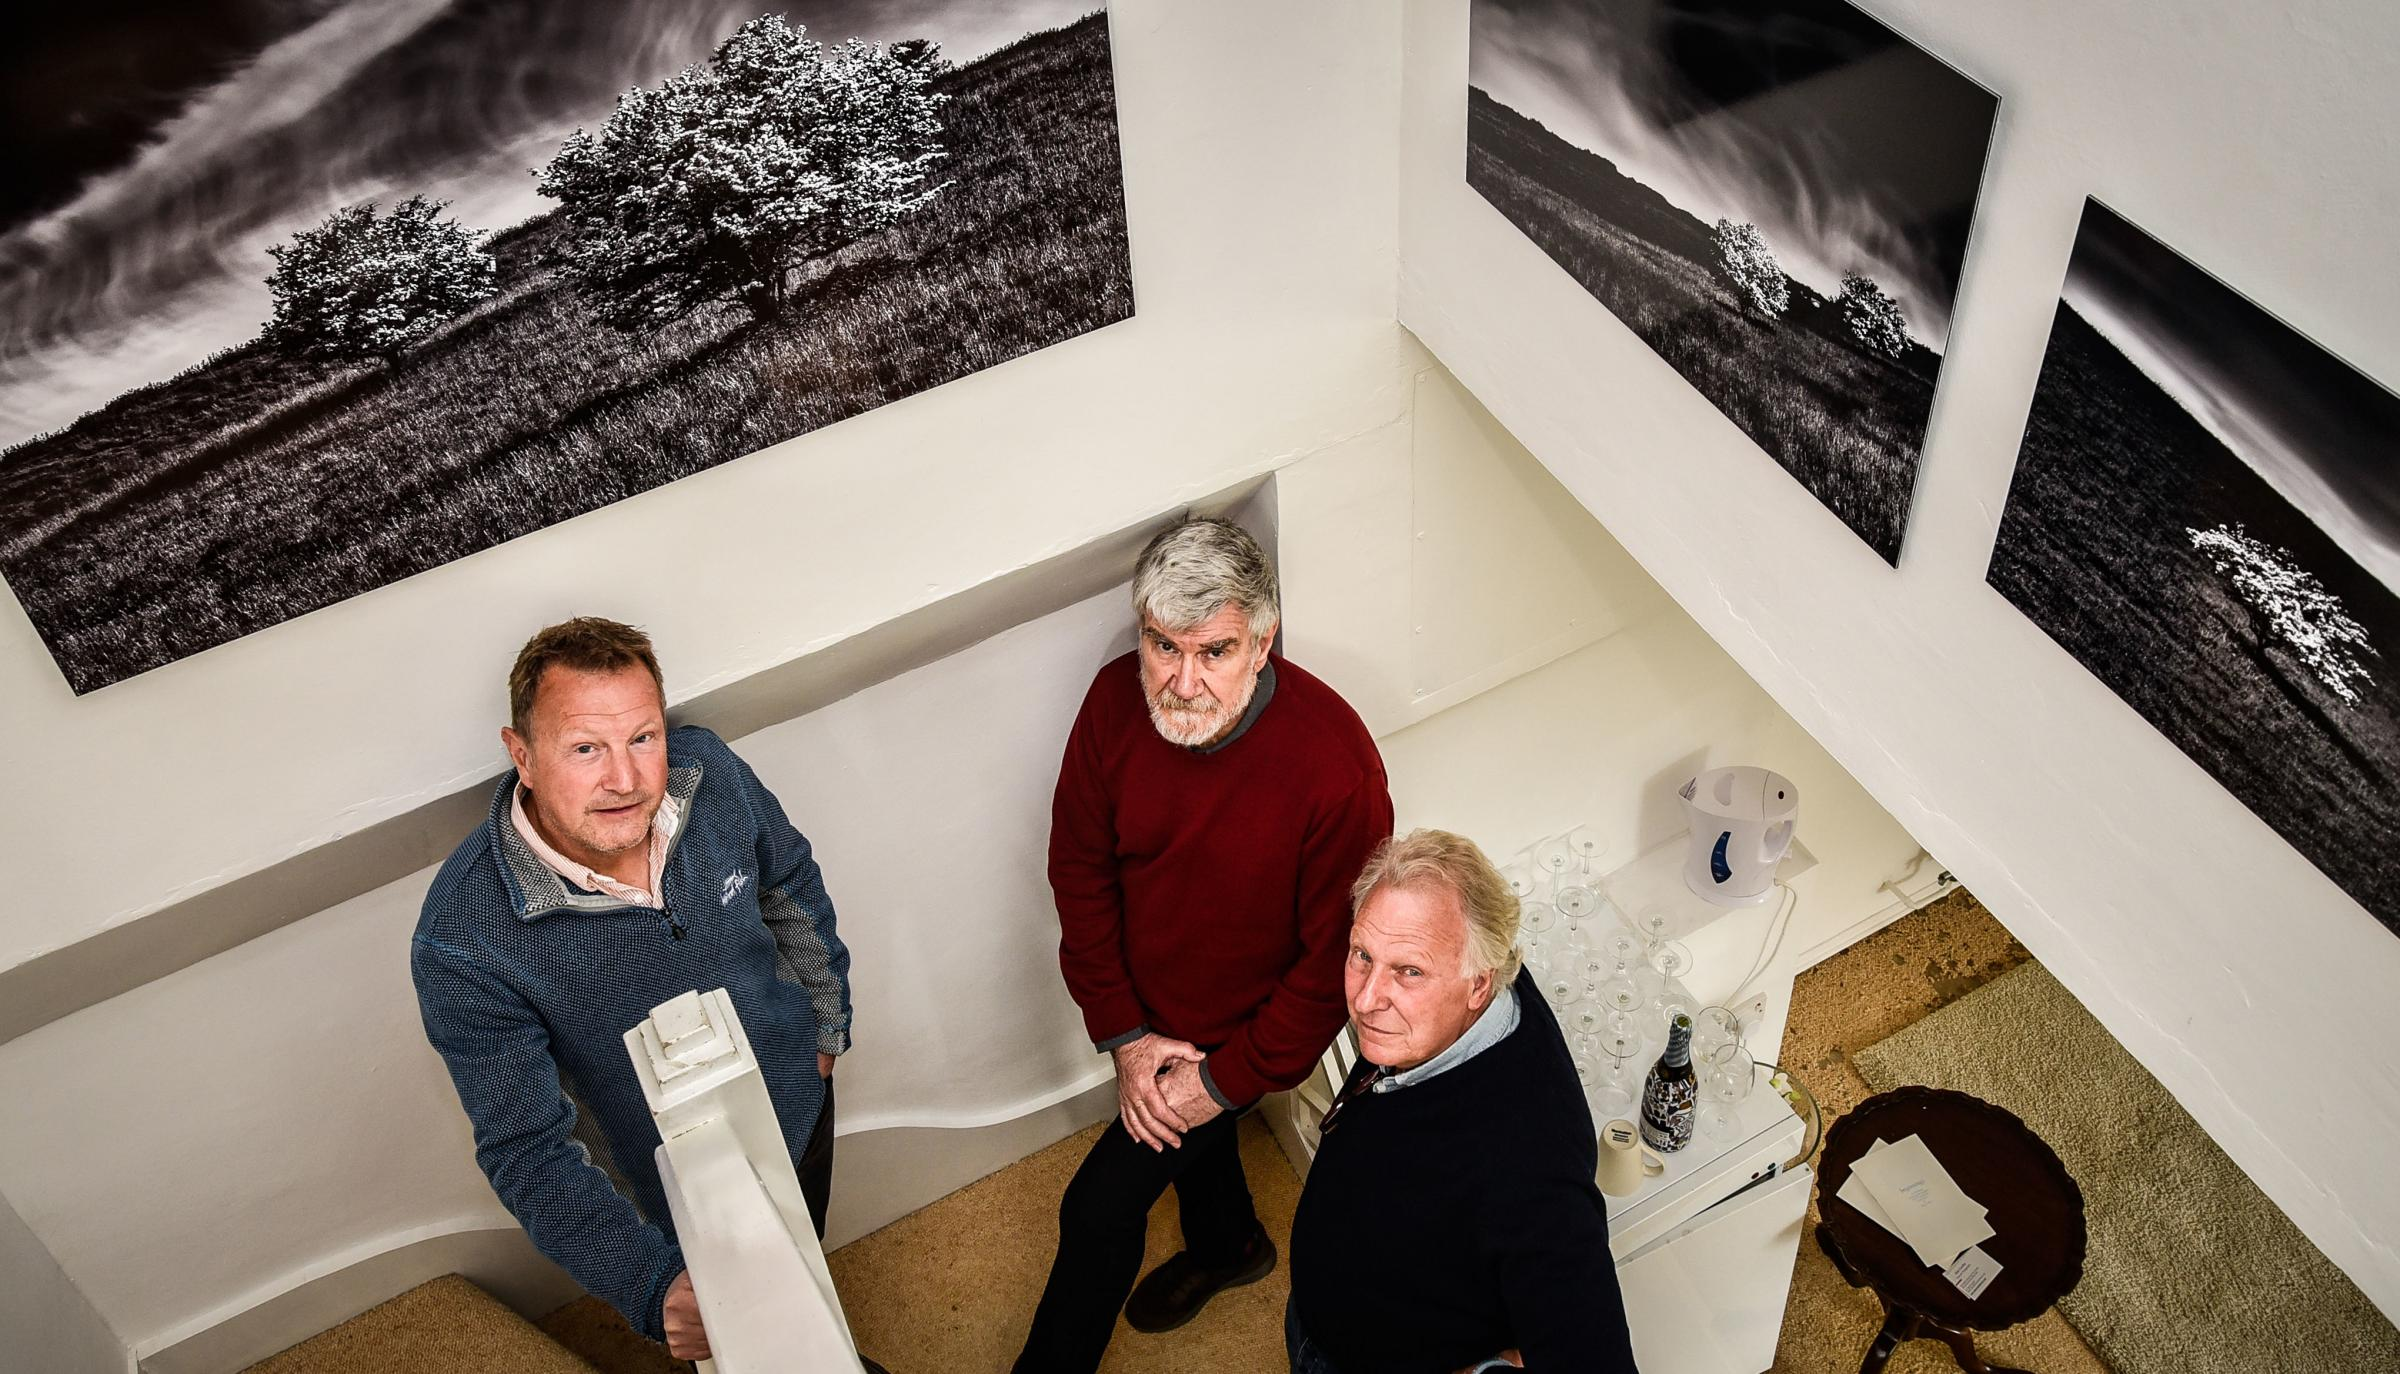 Art photographers have a new beginning in Wiltshire